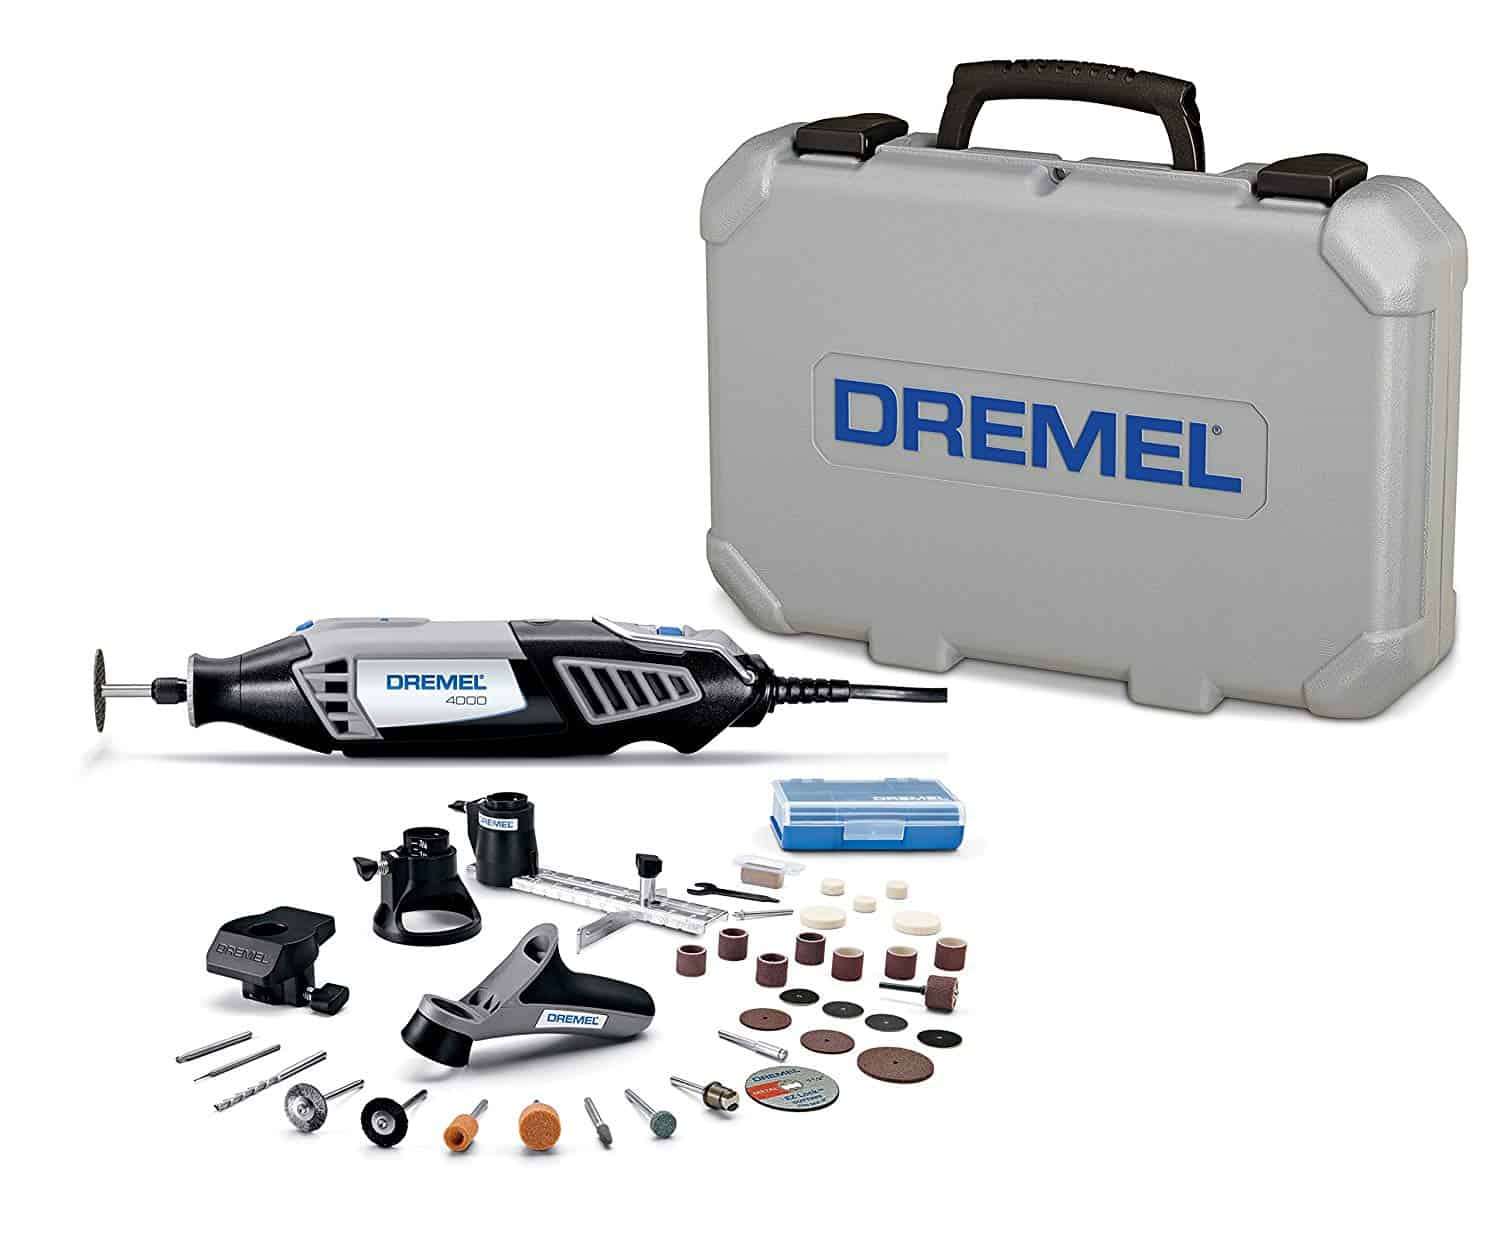 Dremel Rotary Tool with accessories and gray carrying case.